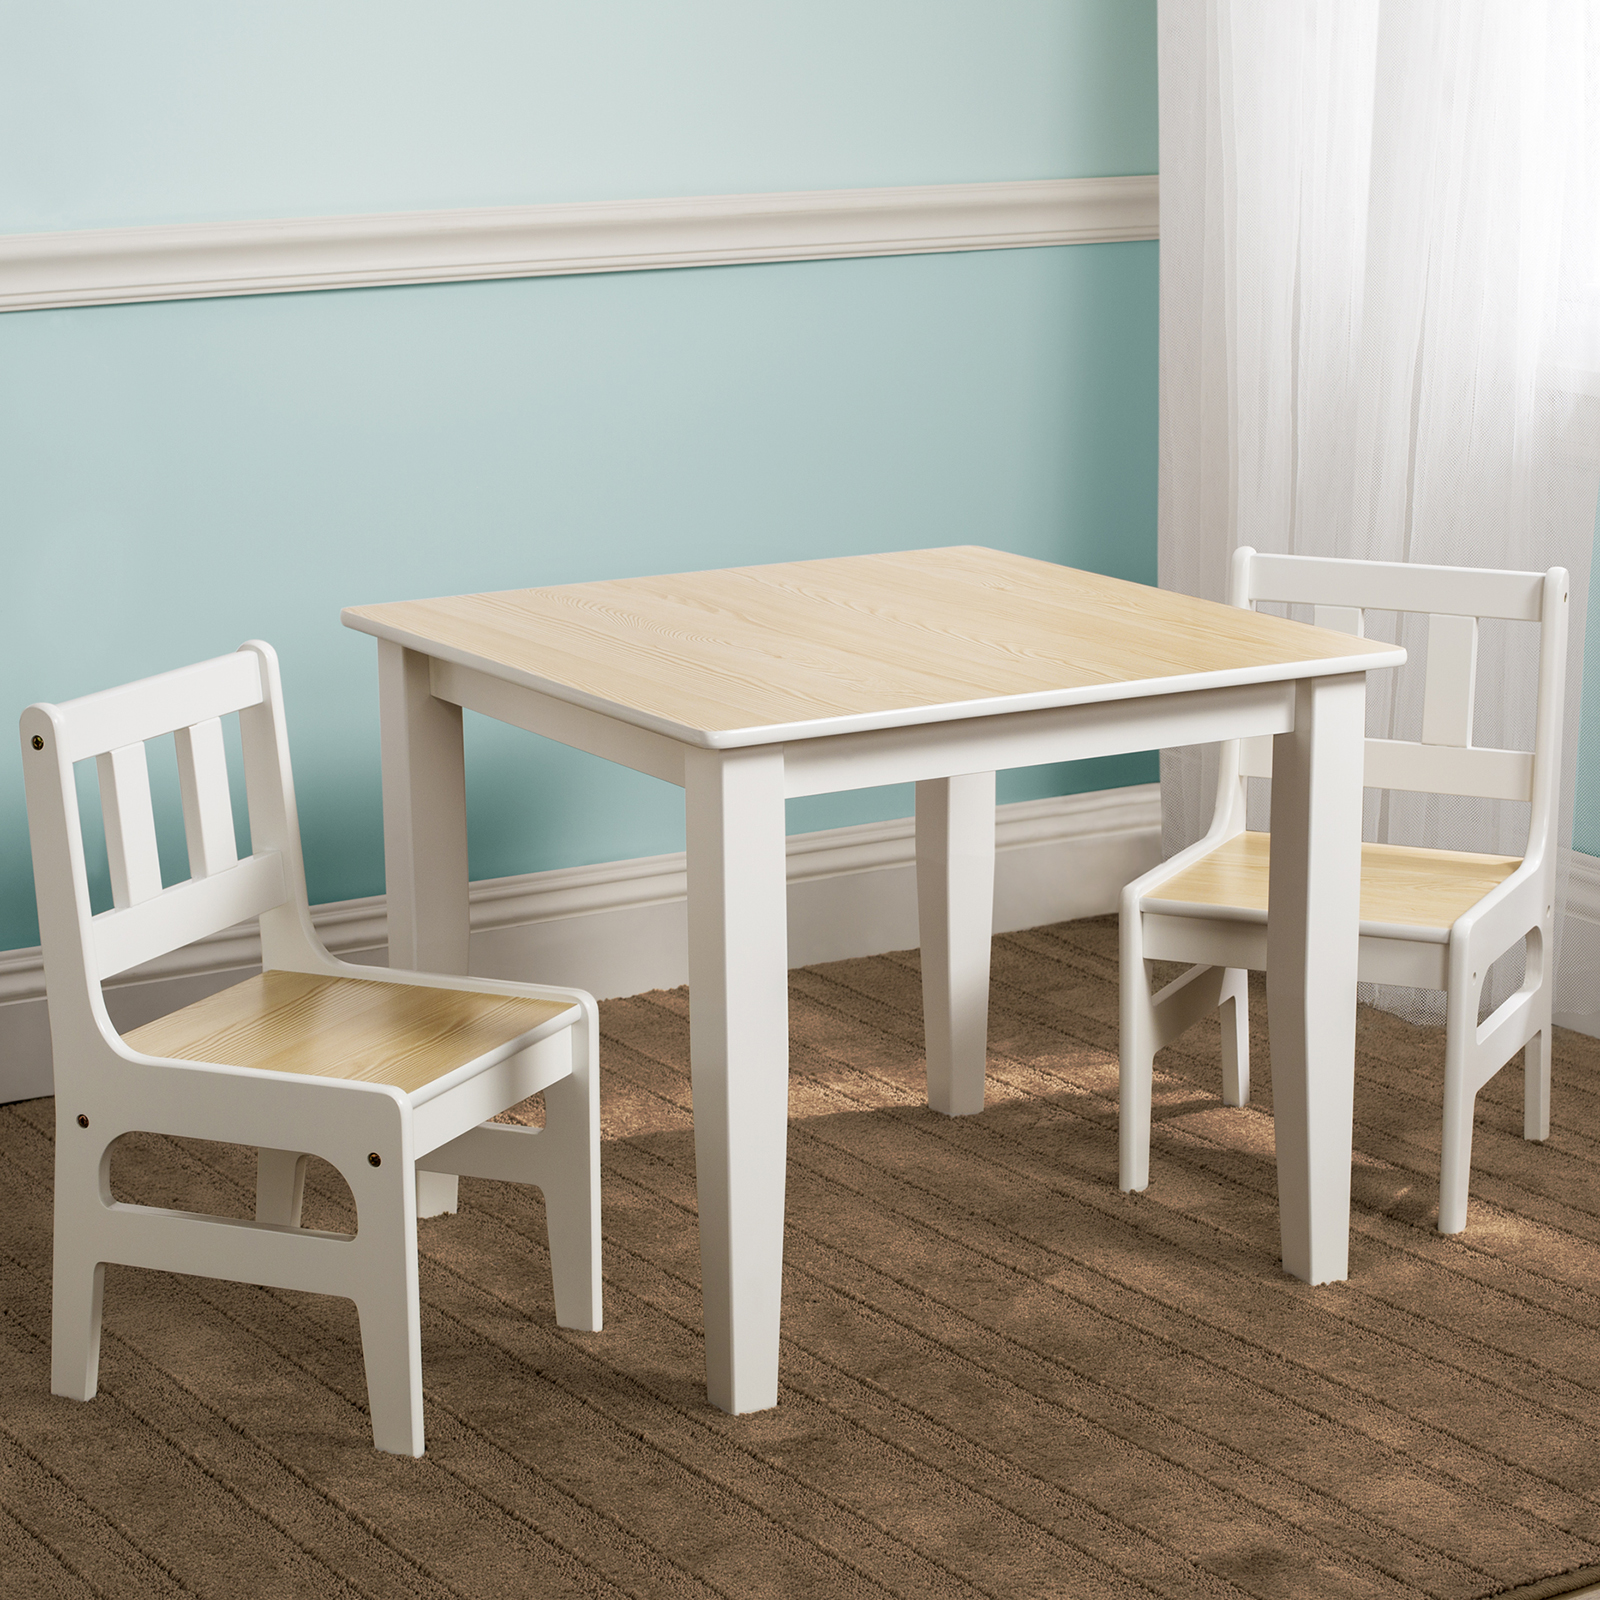 Wooden Kids Table And Chairs New Delta Children Natural Kids Wooden Table And Chairs Set